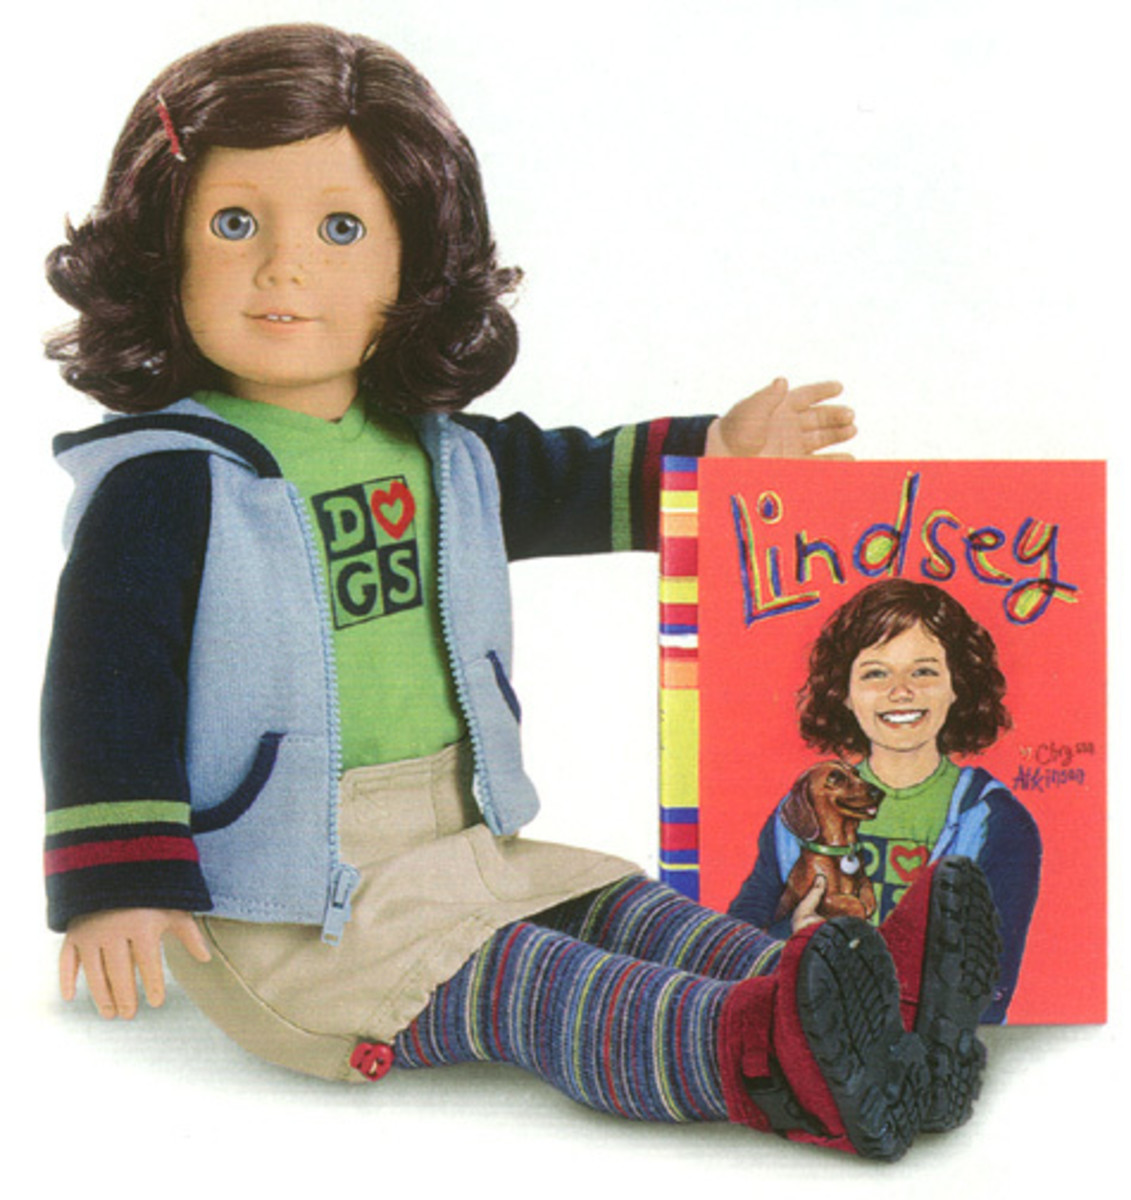 Lindsey, the 2001 Girl of the Year